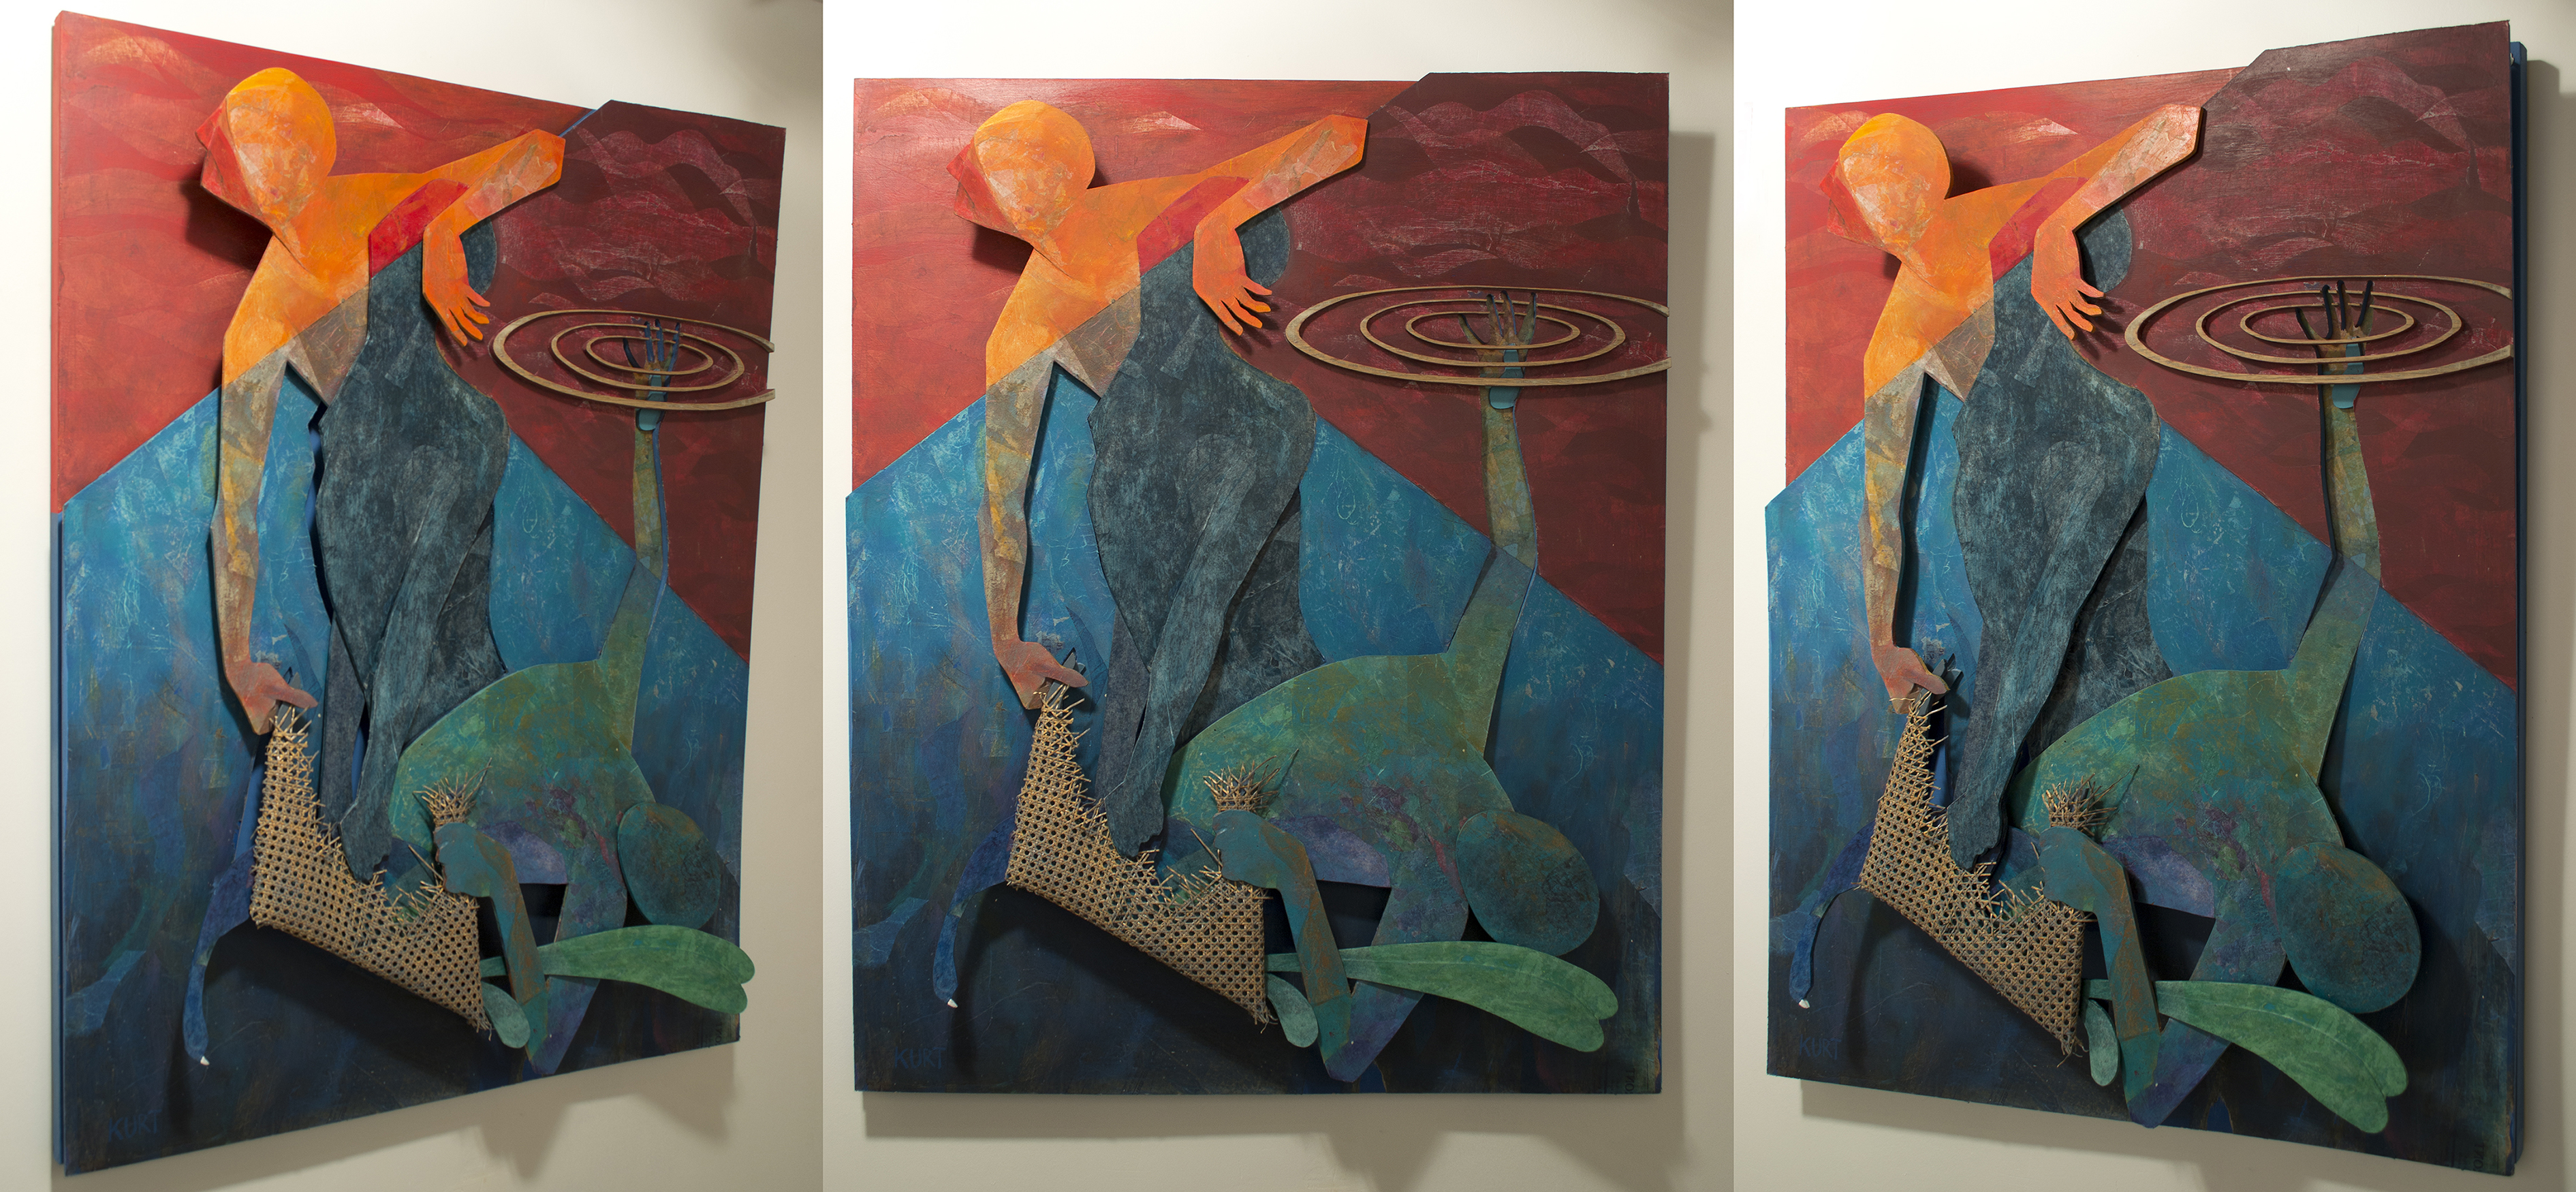 Jenkintown native's art exhibit at MCCC adds autobiographical flair